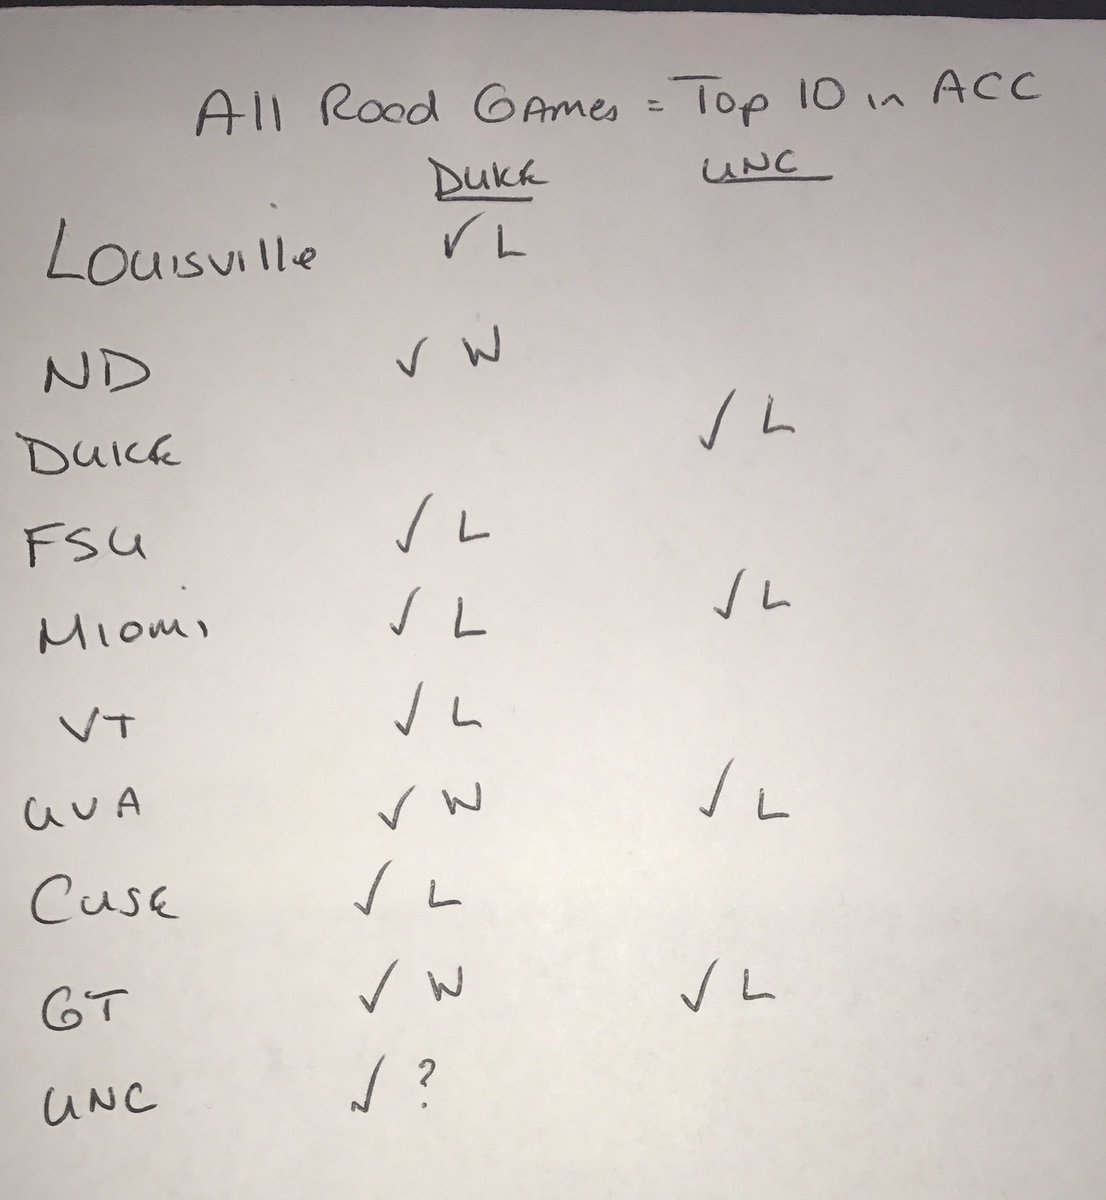 Interesting stat of the unbalanced sched of the ACC. @DukeMBB will play 9 of the top 10 ACC teams on the rd & @UNC_Basketball only played 4.